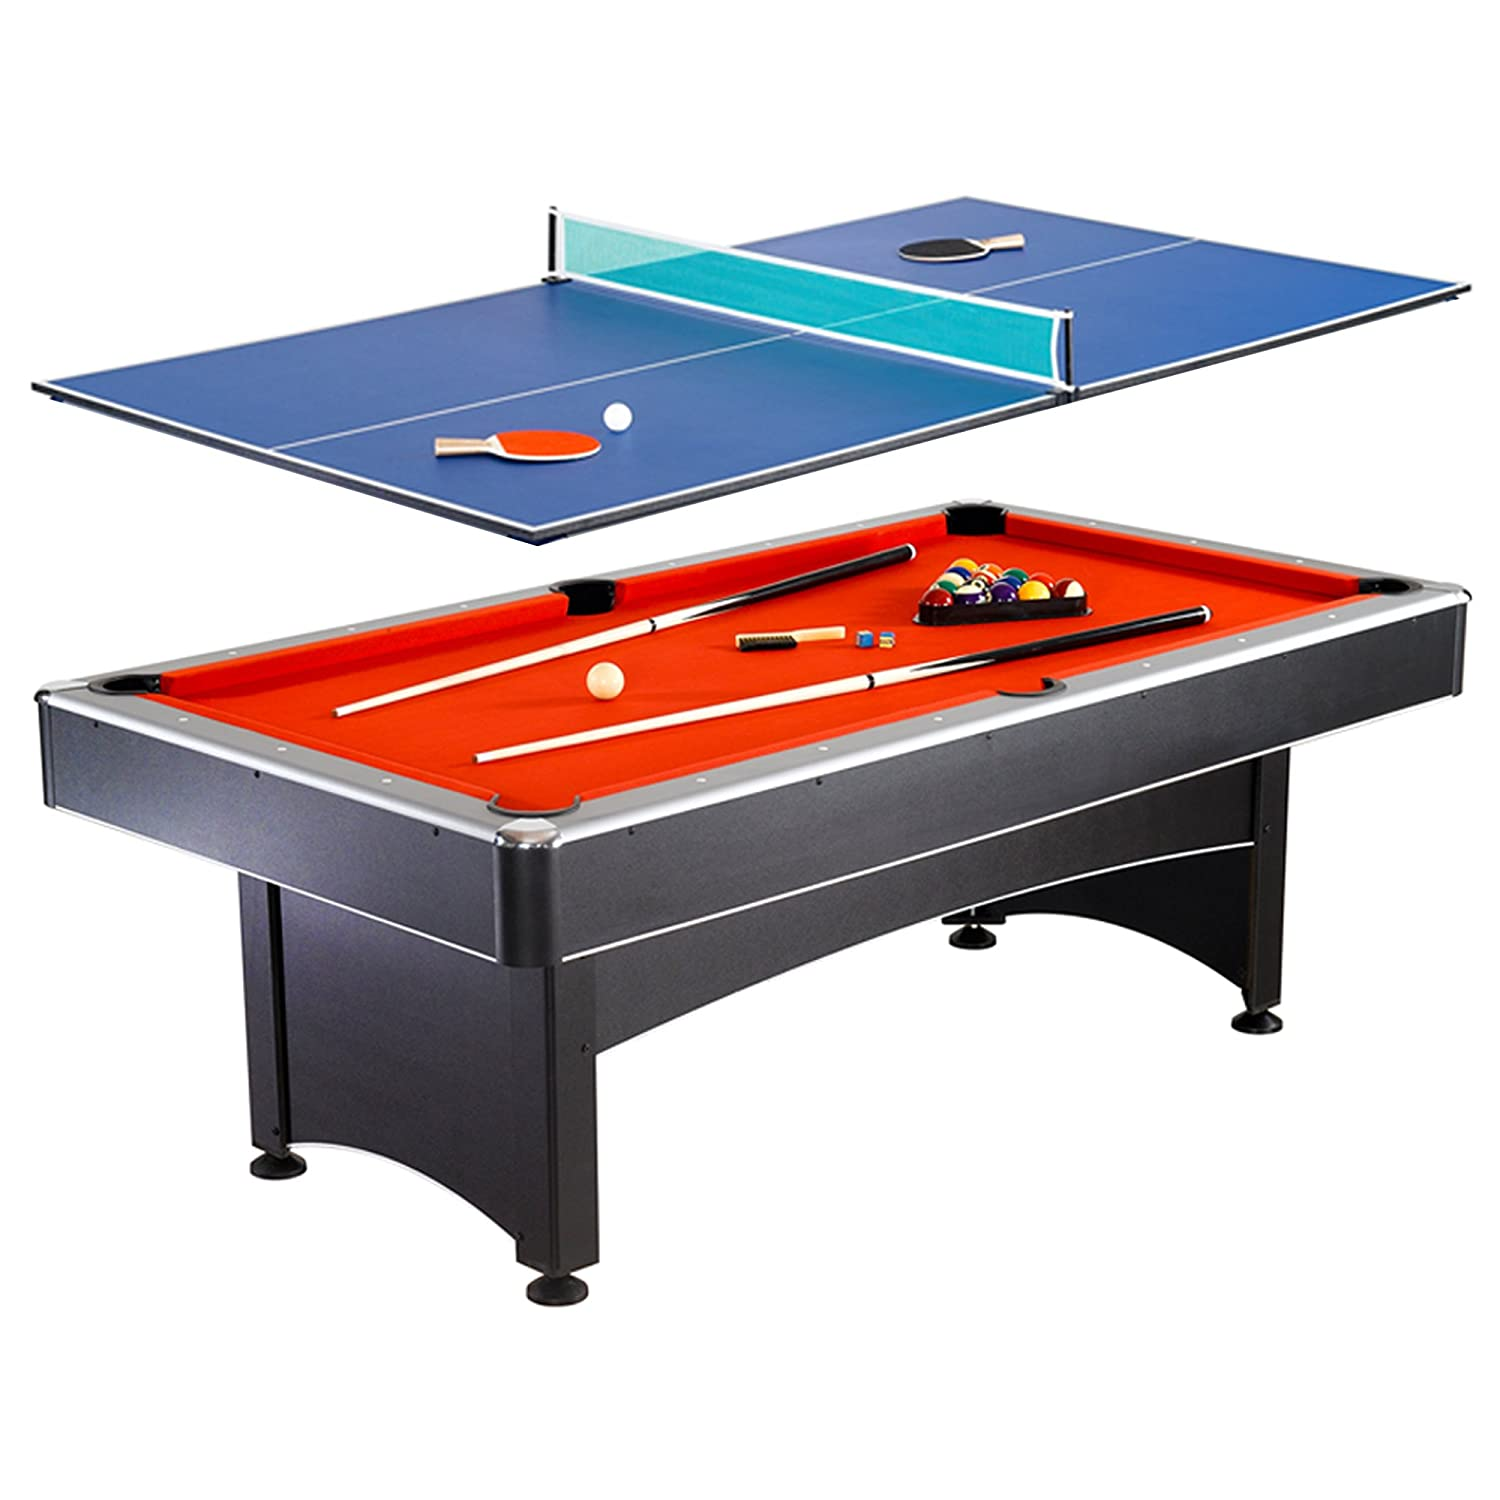 Hathaway Maverick 7 Foot Pool And Table Tennis Multi Game With Red Felt And  Blue